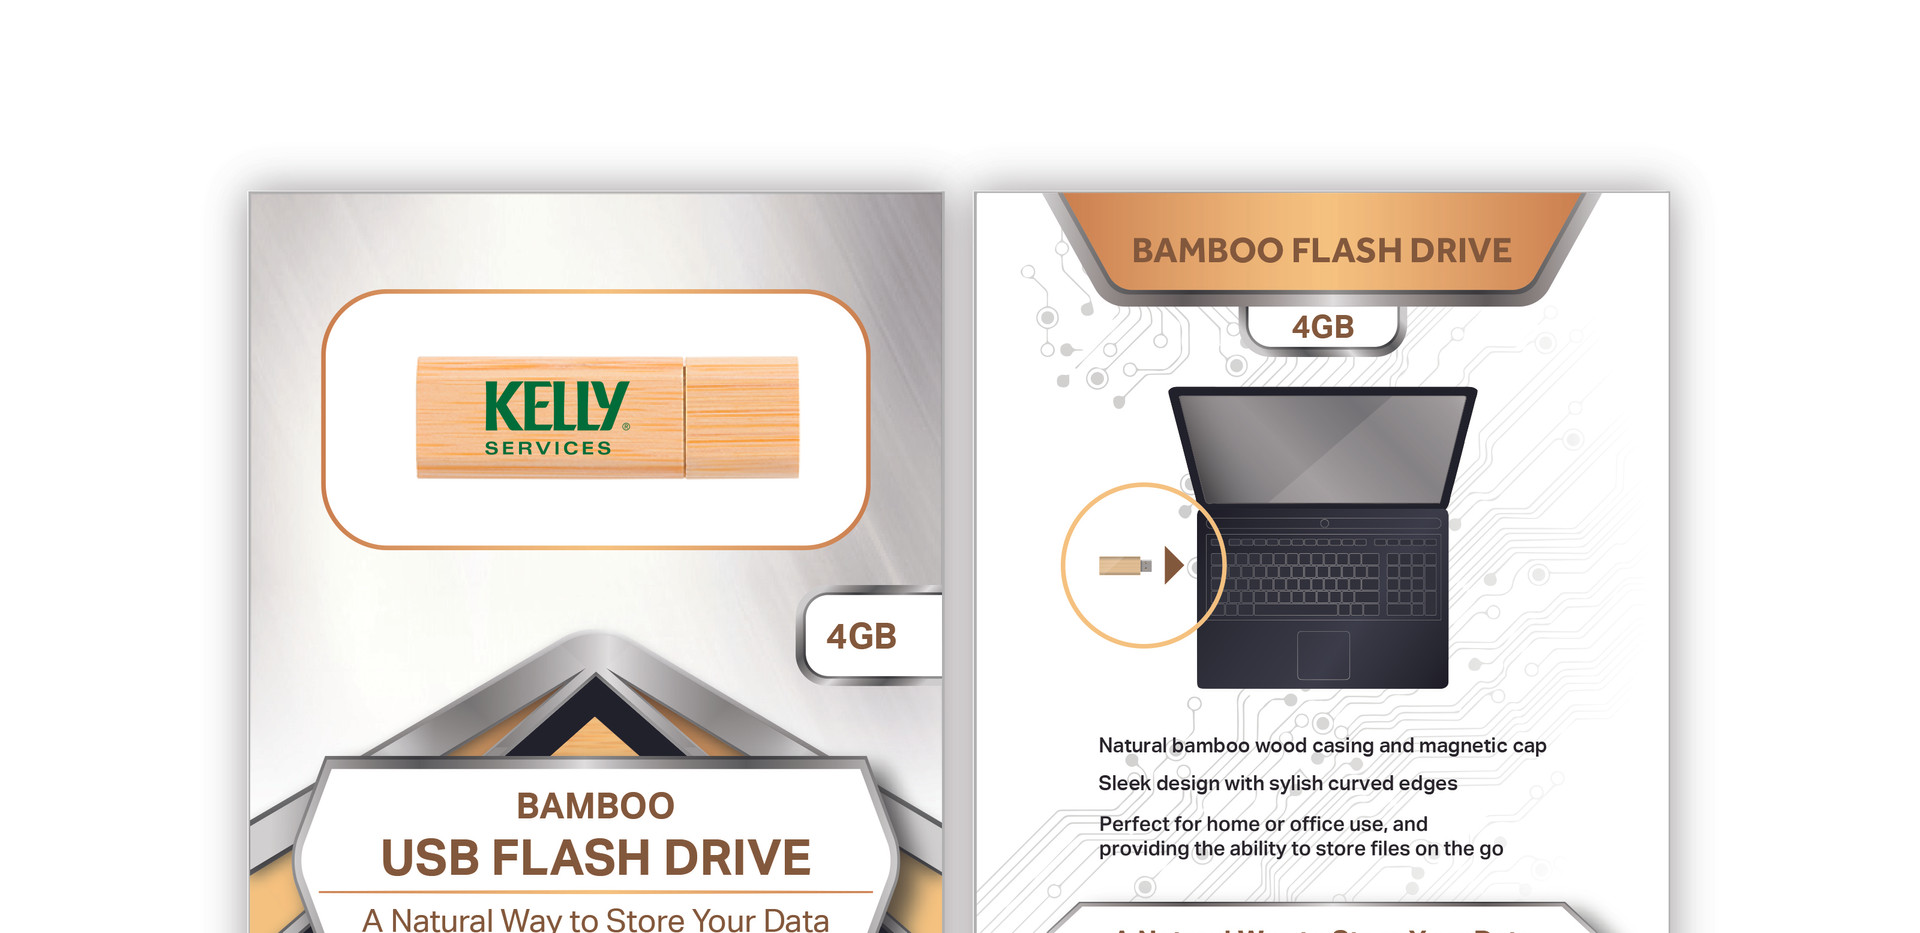 Kelly Services Bamboo Flash Drive standa